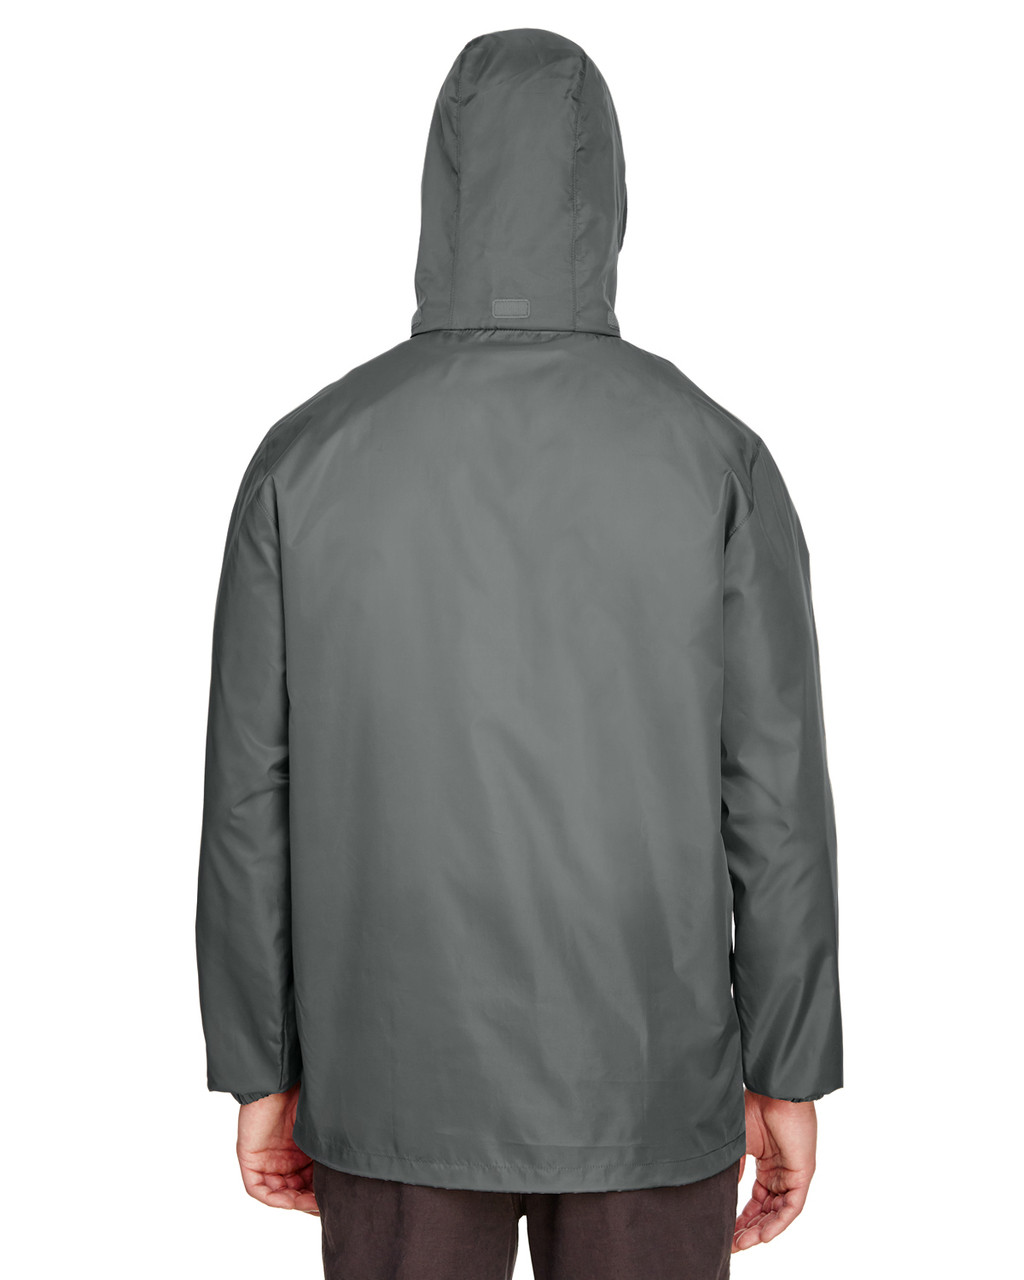 Sport Graphite, Back - TT73 Team 365 Adult Zone Protect Lightweight Jacket   BlankClothing.ca